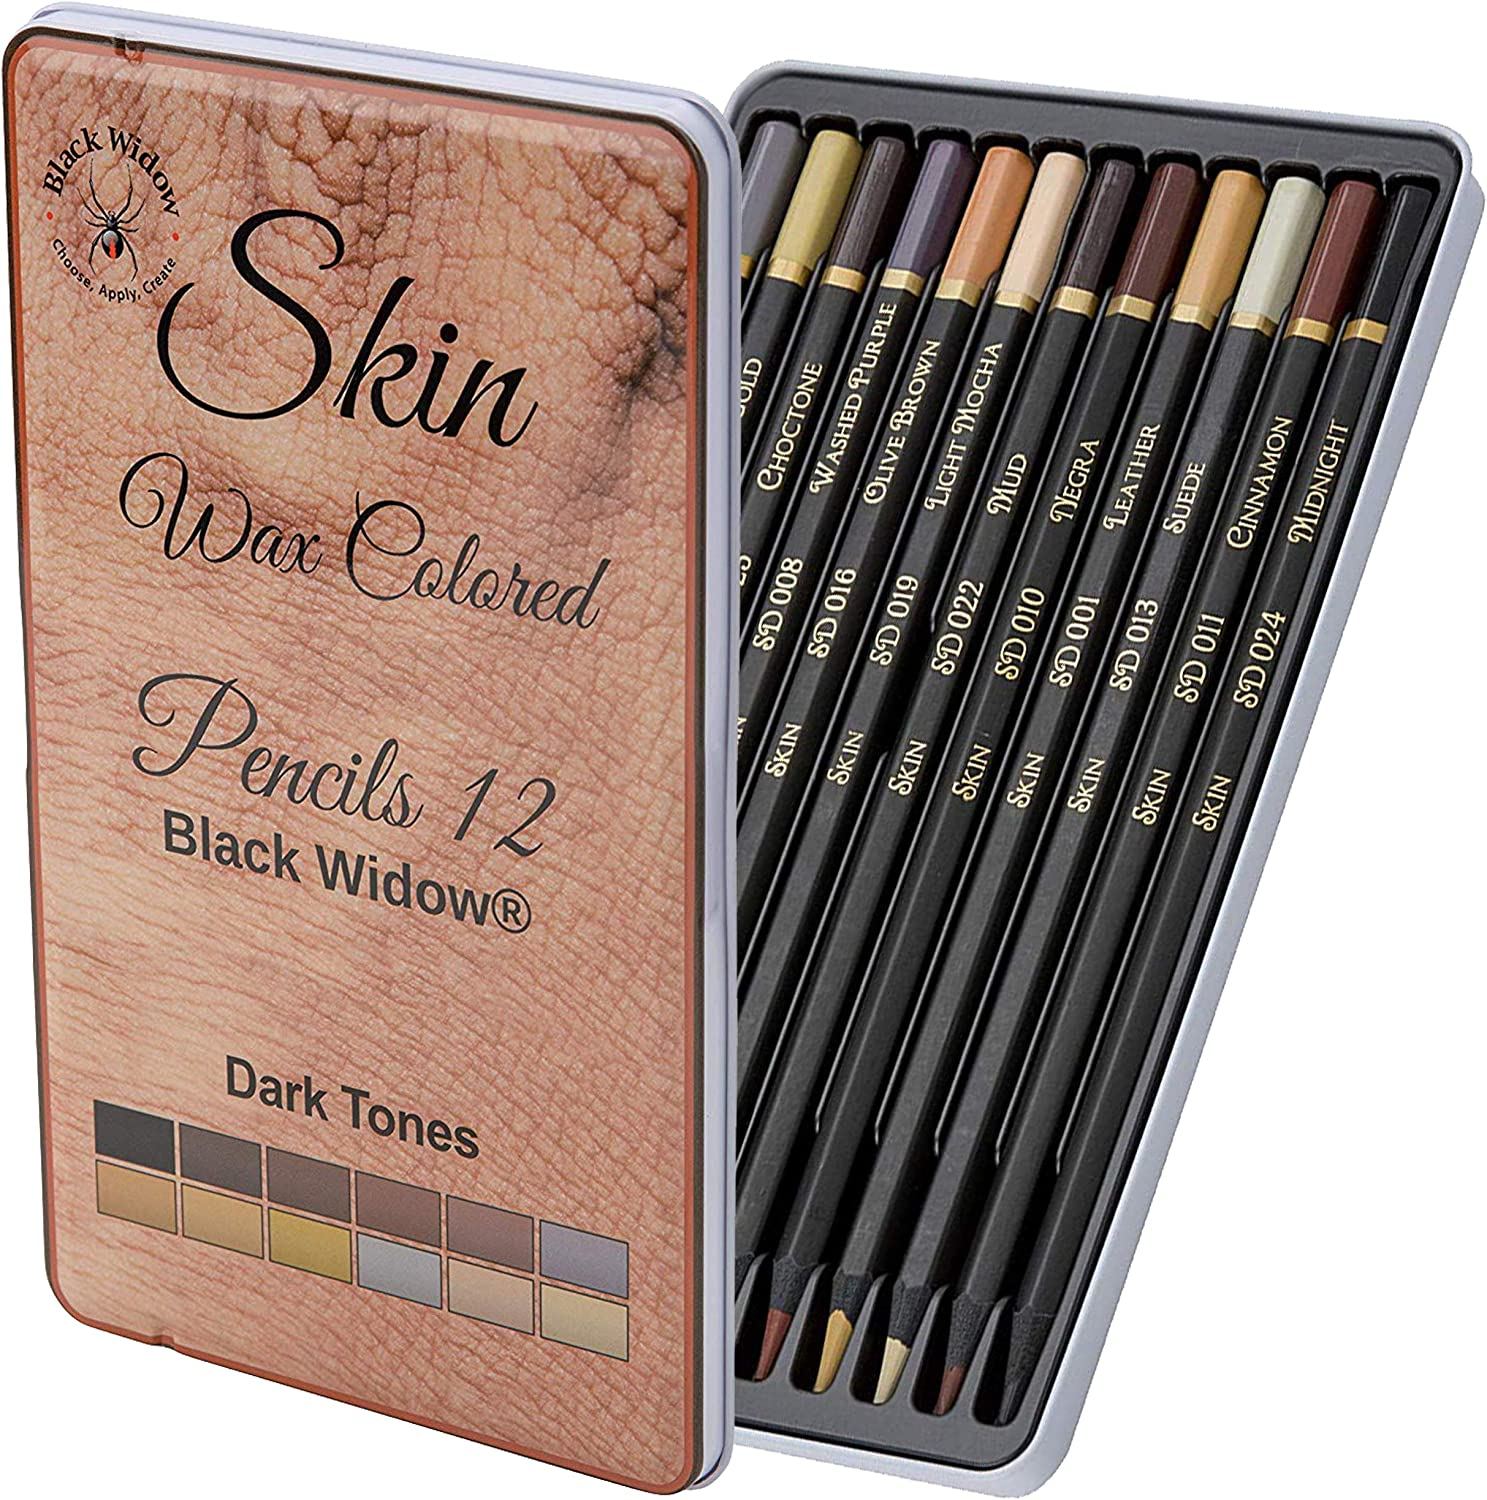 Black Widow Dark Skin Tone Colored Pencils for Adults - Color Pencils for Portraits and Skintone Artists - A Complete Color Range - Now With Light Fast Ratings